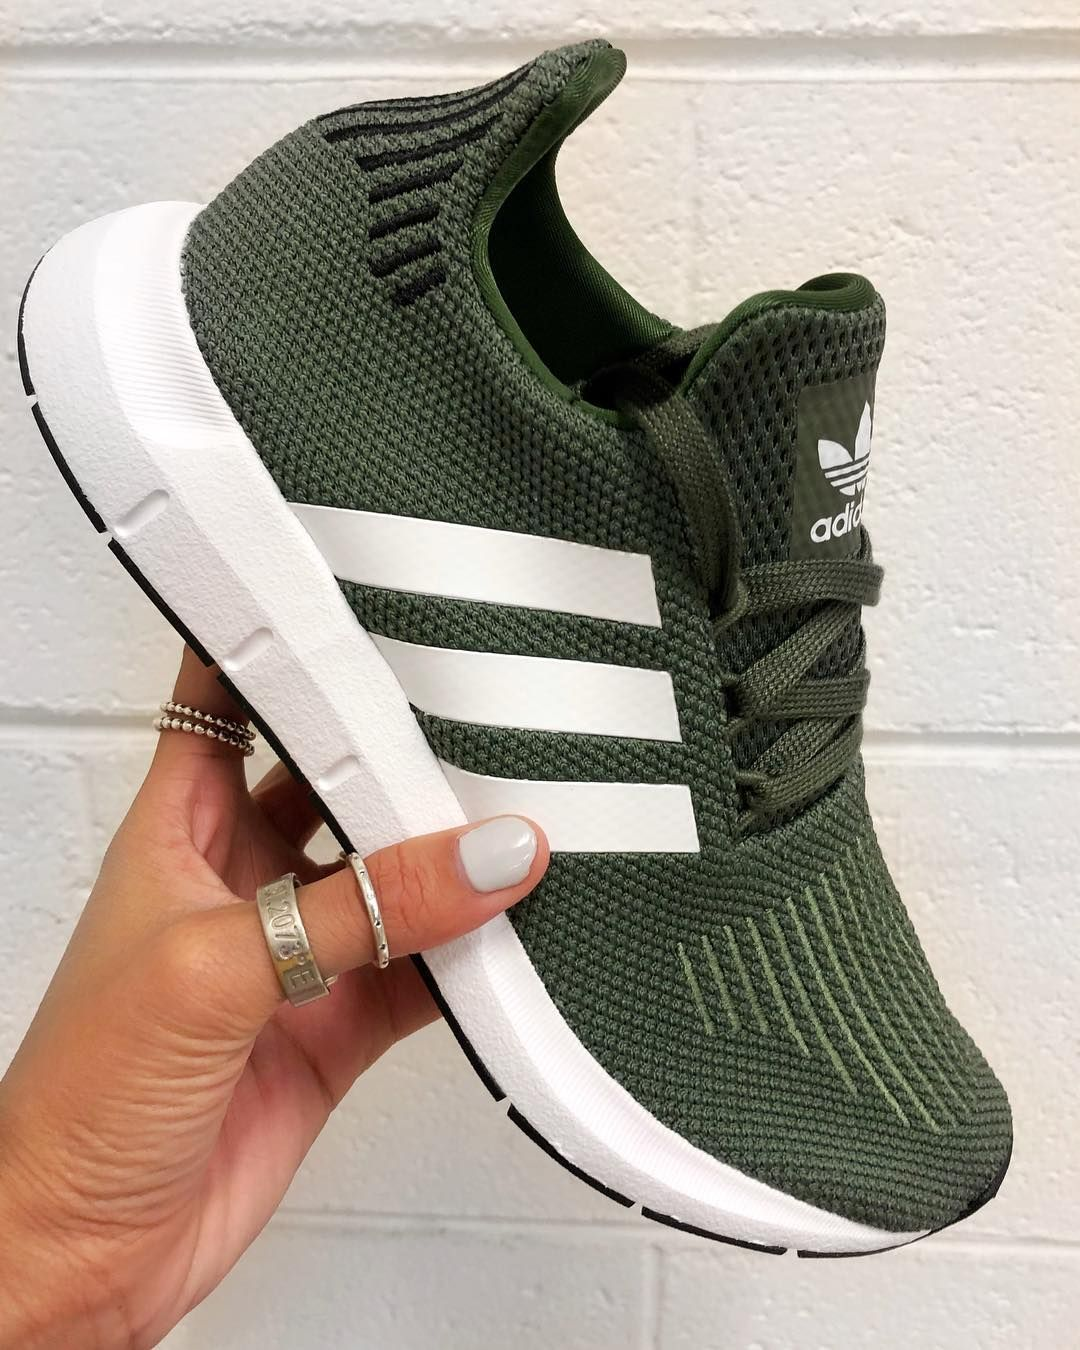 25c85853b adidas Originals Swift Run – Green – AQ0866 - Shoes. Stylish adidas shoes  displayed by woman with jewellery.